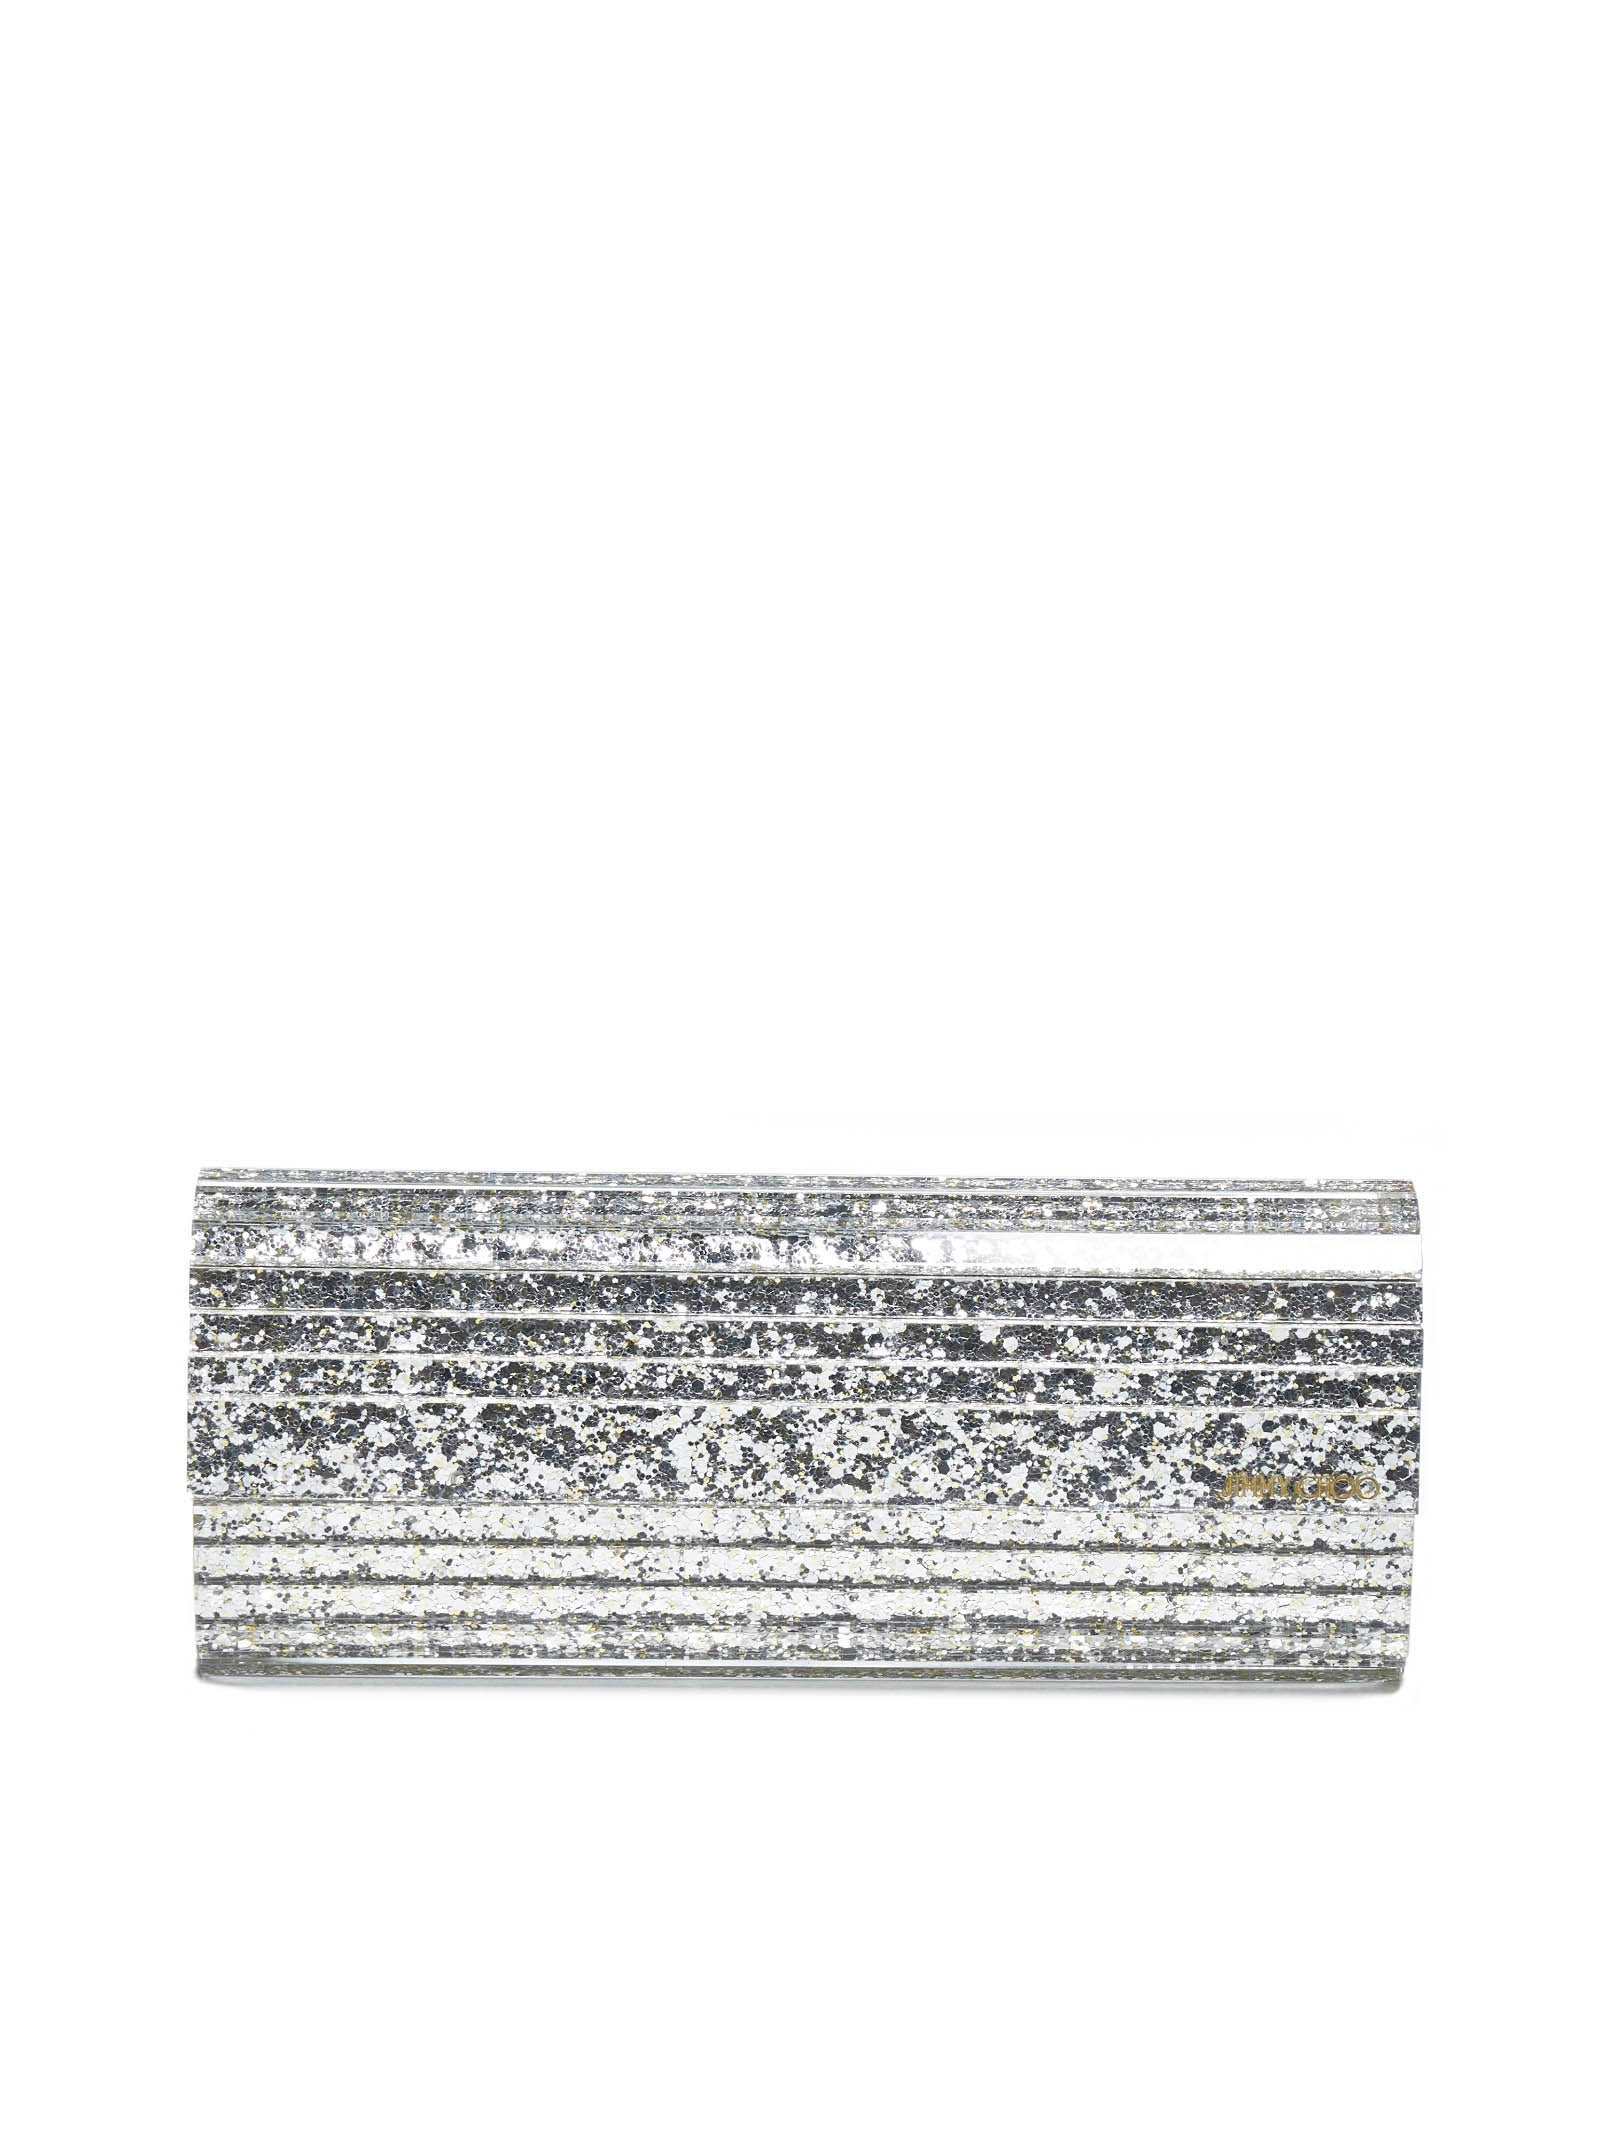 Jimmy Choo Sweetie Glitter Acrylic And Leather Clutch Bag In Multi